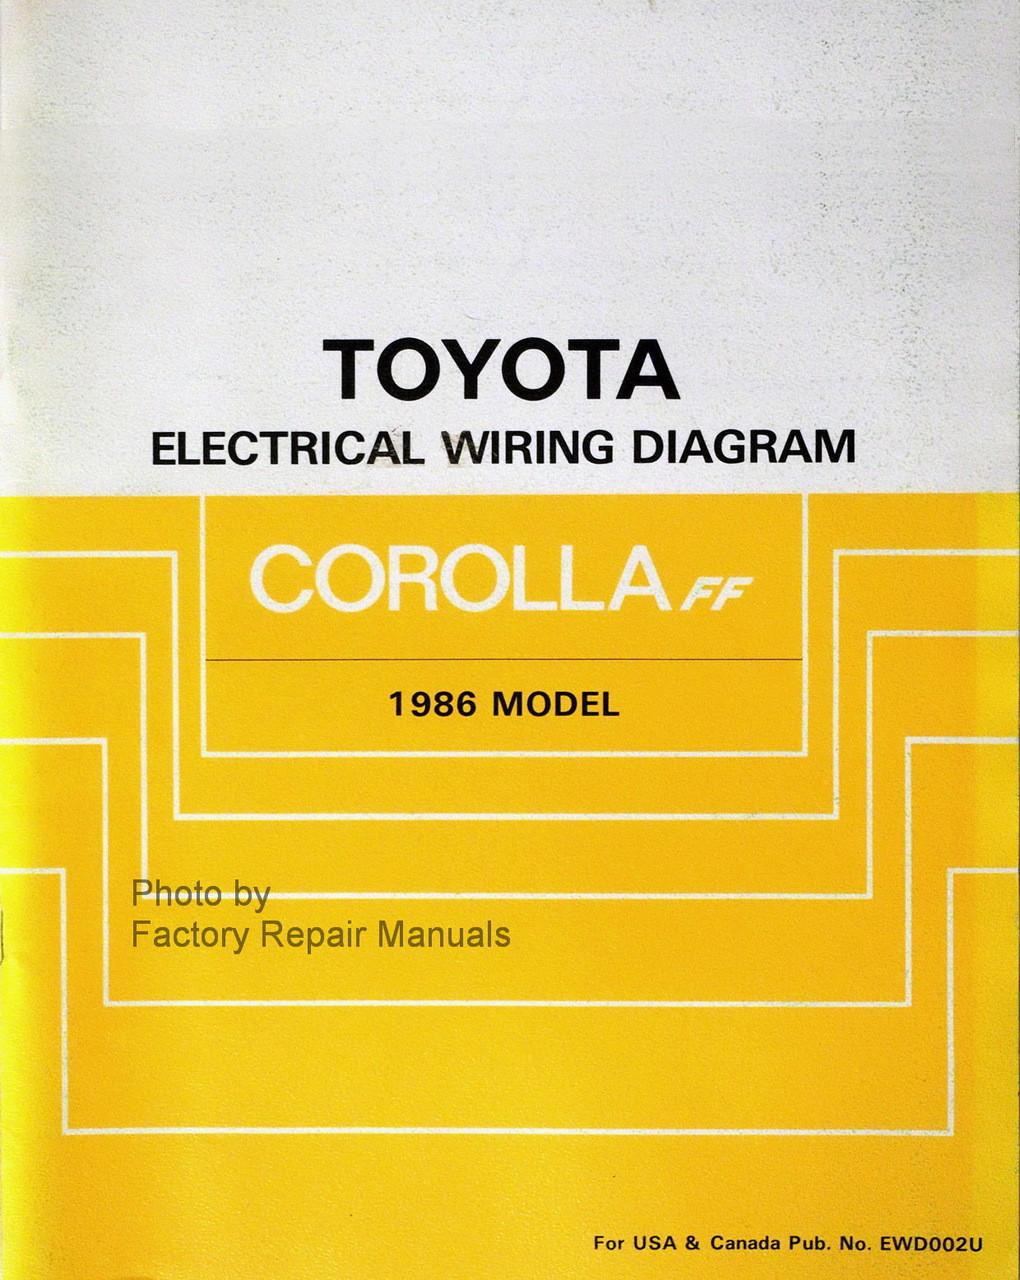 1986 Toyota Corolla Fwd Electrical Wiring Diagrams